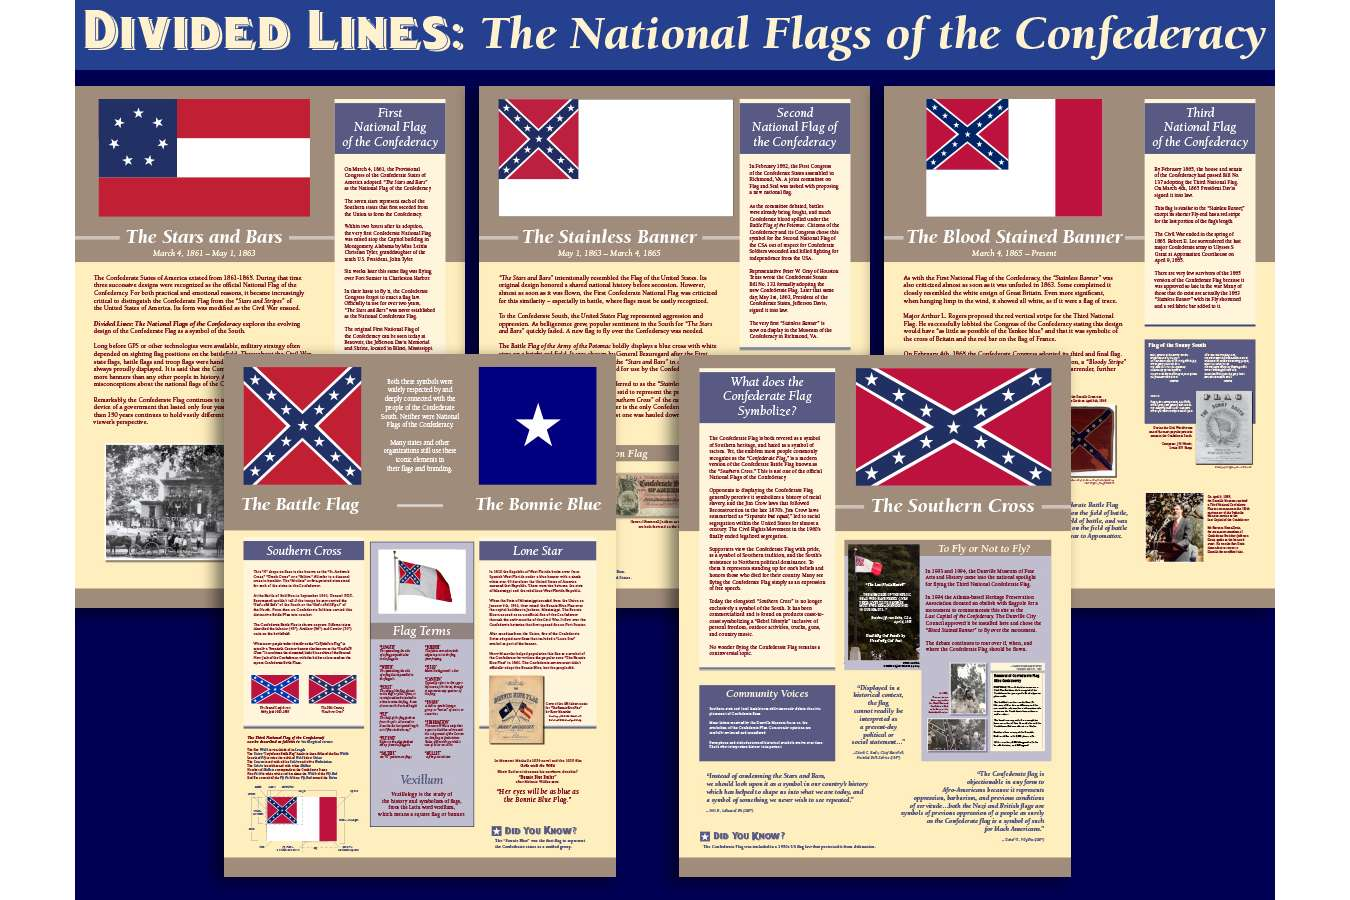 DMFAH 2 Flag 5 Panes : Vexillology is the study of the history and symbolism of flags, from the Latin word Vexillum, which means a square flag or banner. The exhibit briefly presents the many threads of symbology, history, popular opinion and practicality woven into the design of the Confederate Flag.